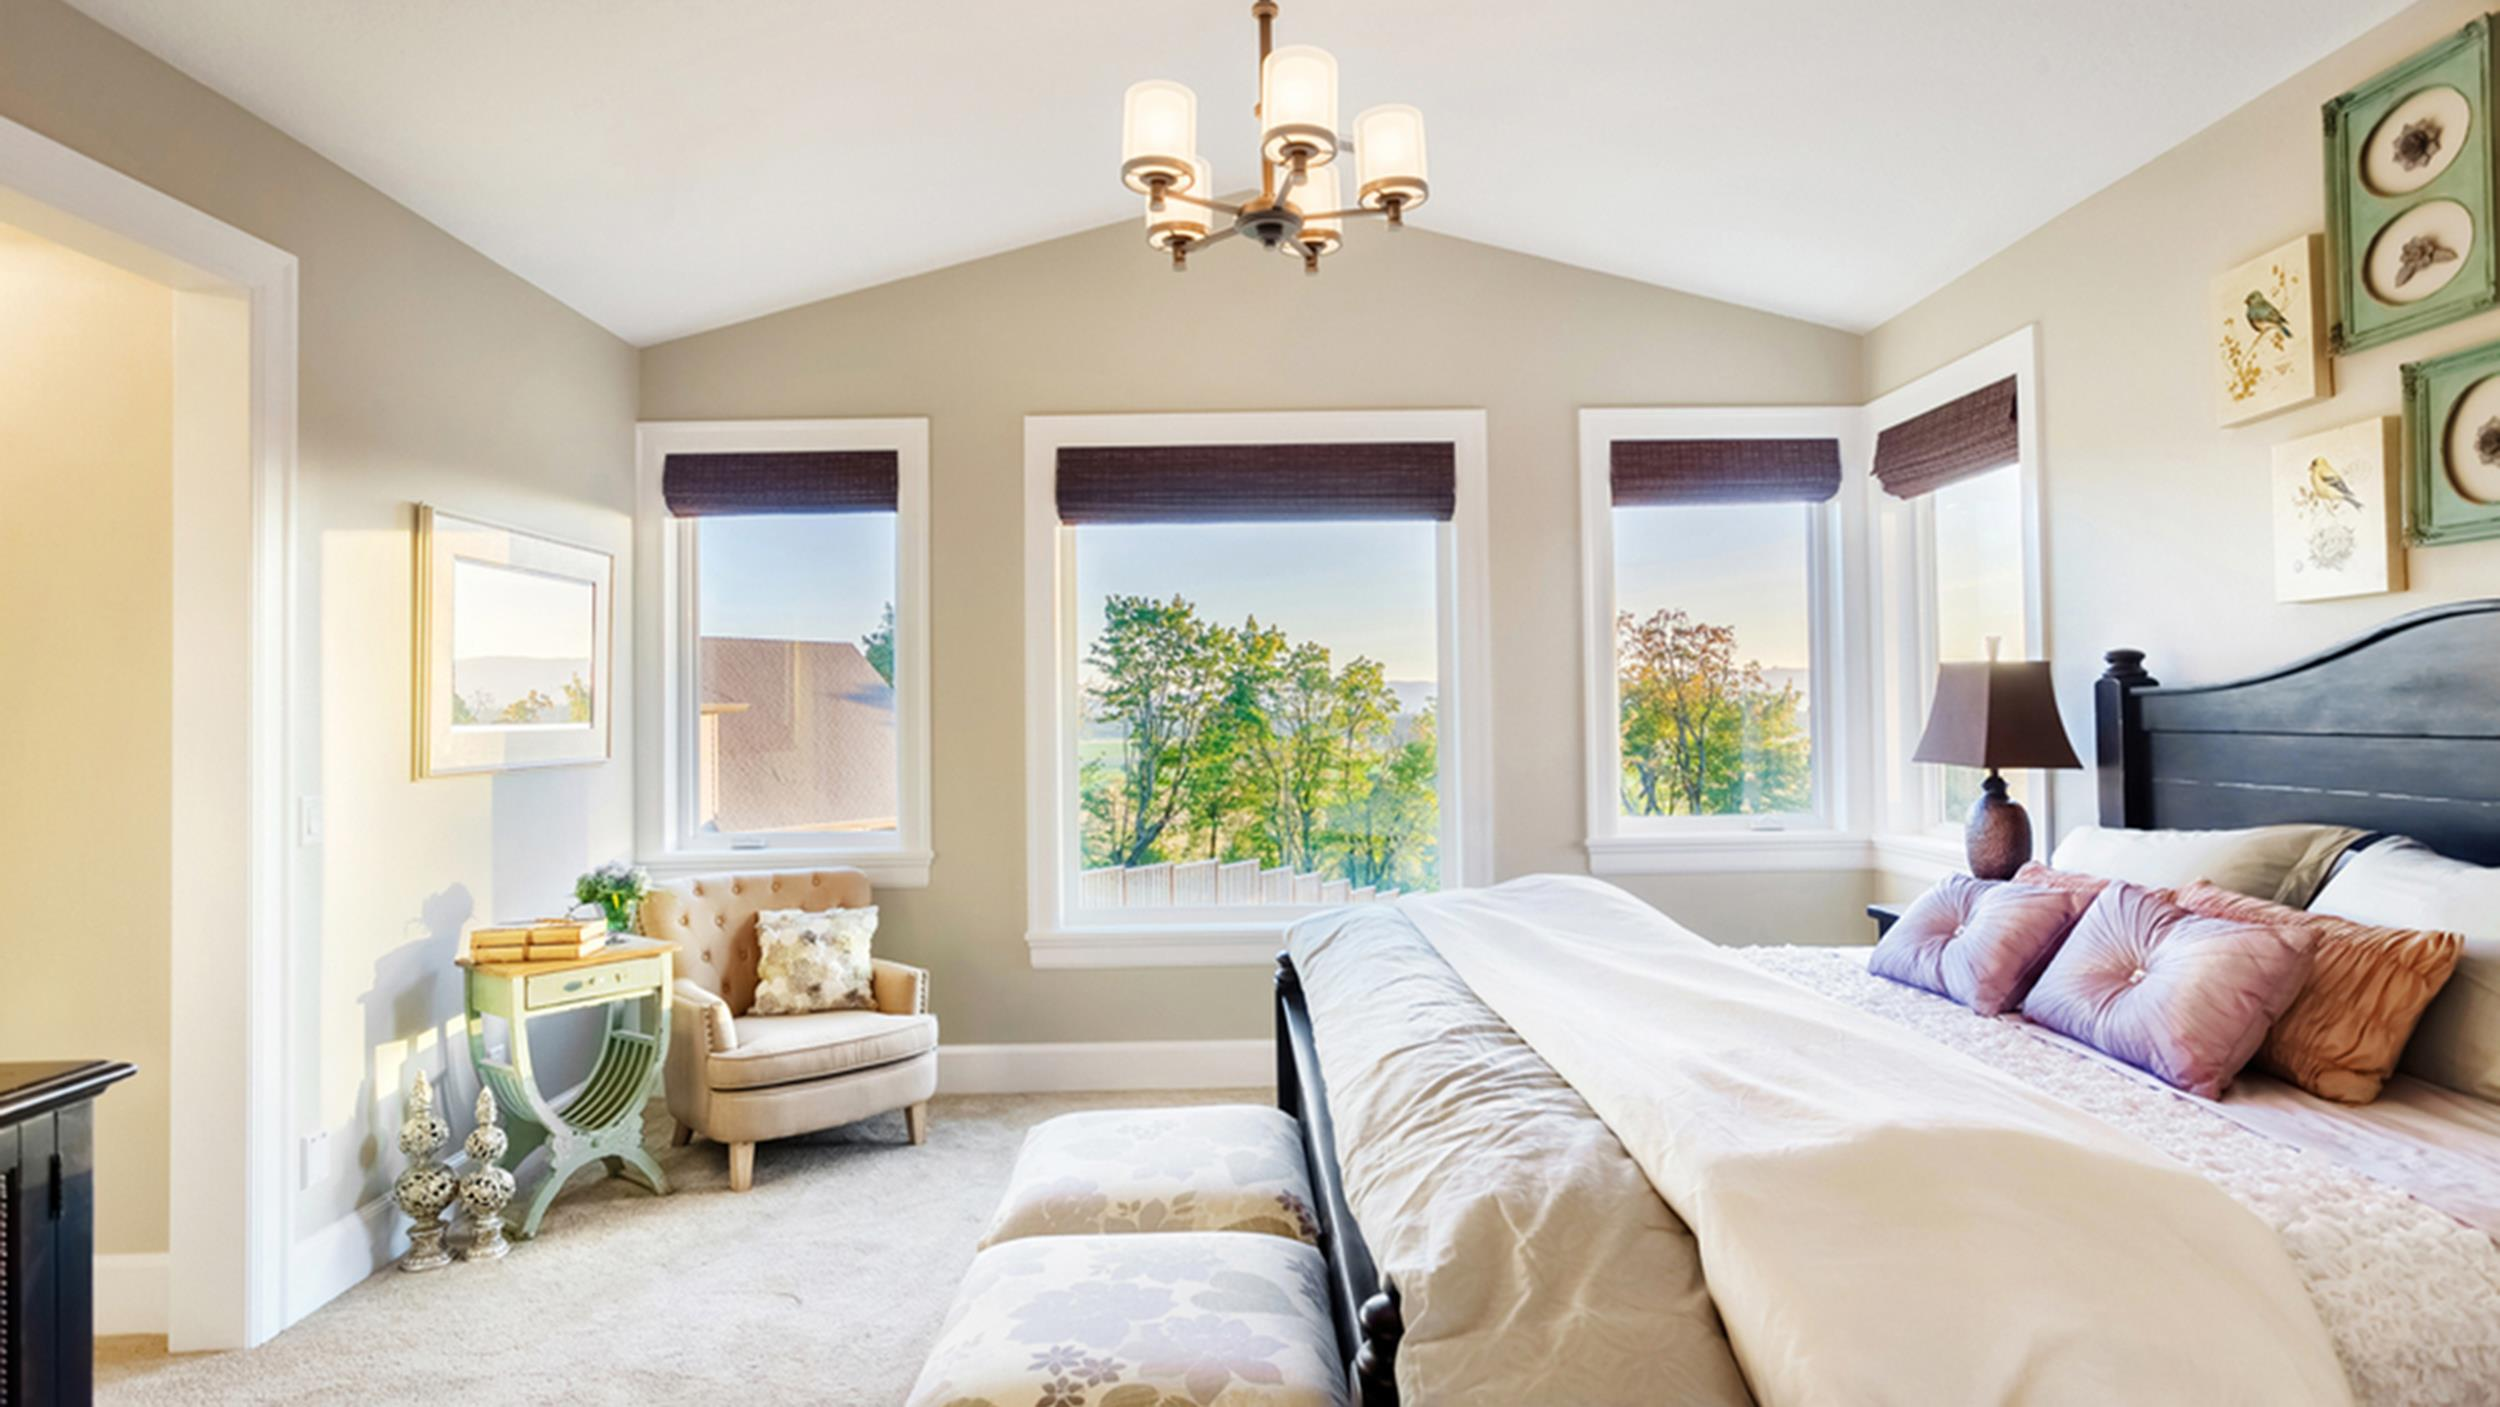 Bedroom Spring Cleaning Checklist| Spring Cleaning Checklist, Spring Cleaning Bedroom, BEdroom Spring Cleaning, Spring Cleaning Tips, Cleaning Tips, Cleaning, Cleaning Hacks, Spring Cleaning #SpringCleaningChecklist #SpringCleaning #Cleaning